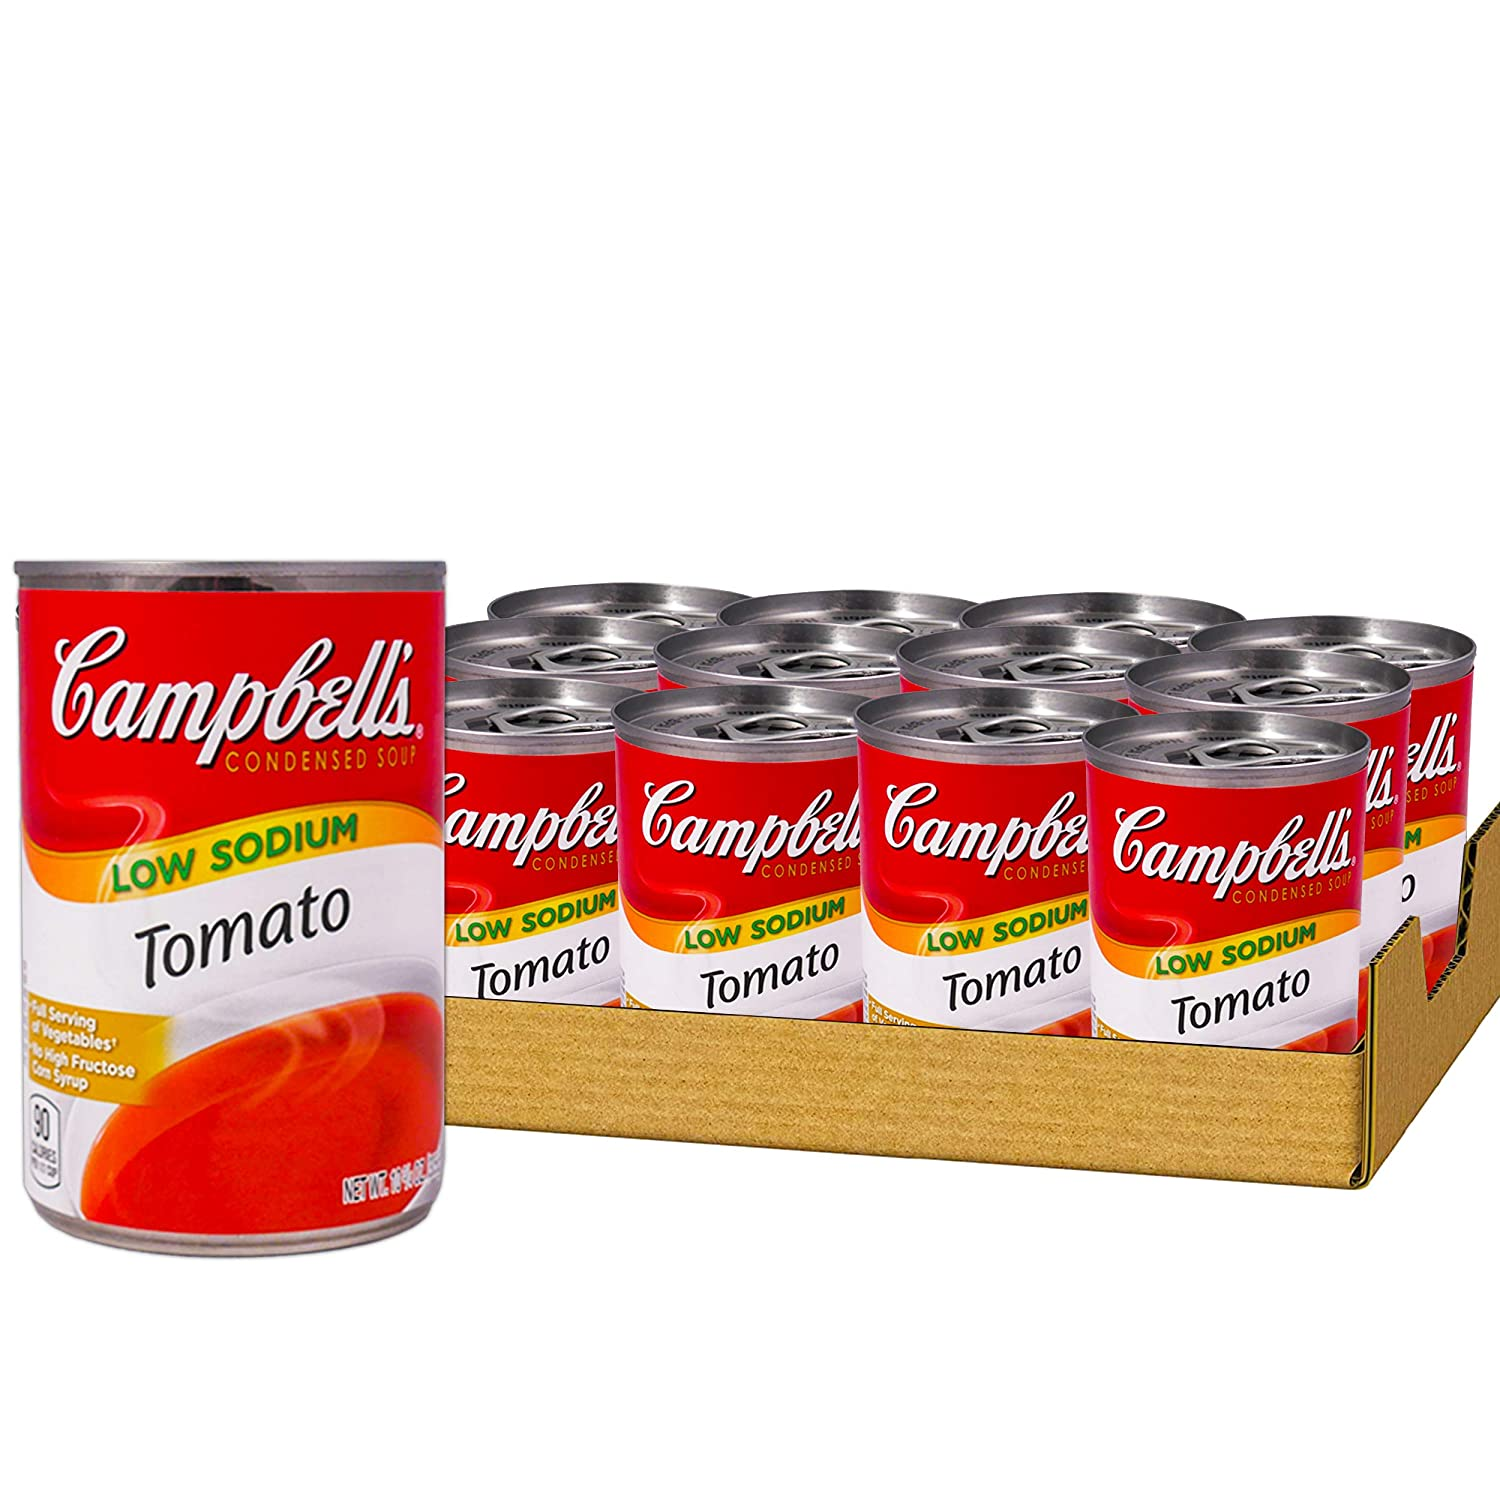 Campbell's Condensed Tomato Soup Low Sodium, 10.75 oz Can, Pack of 12